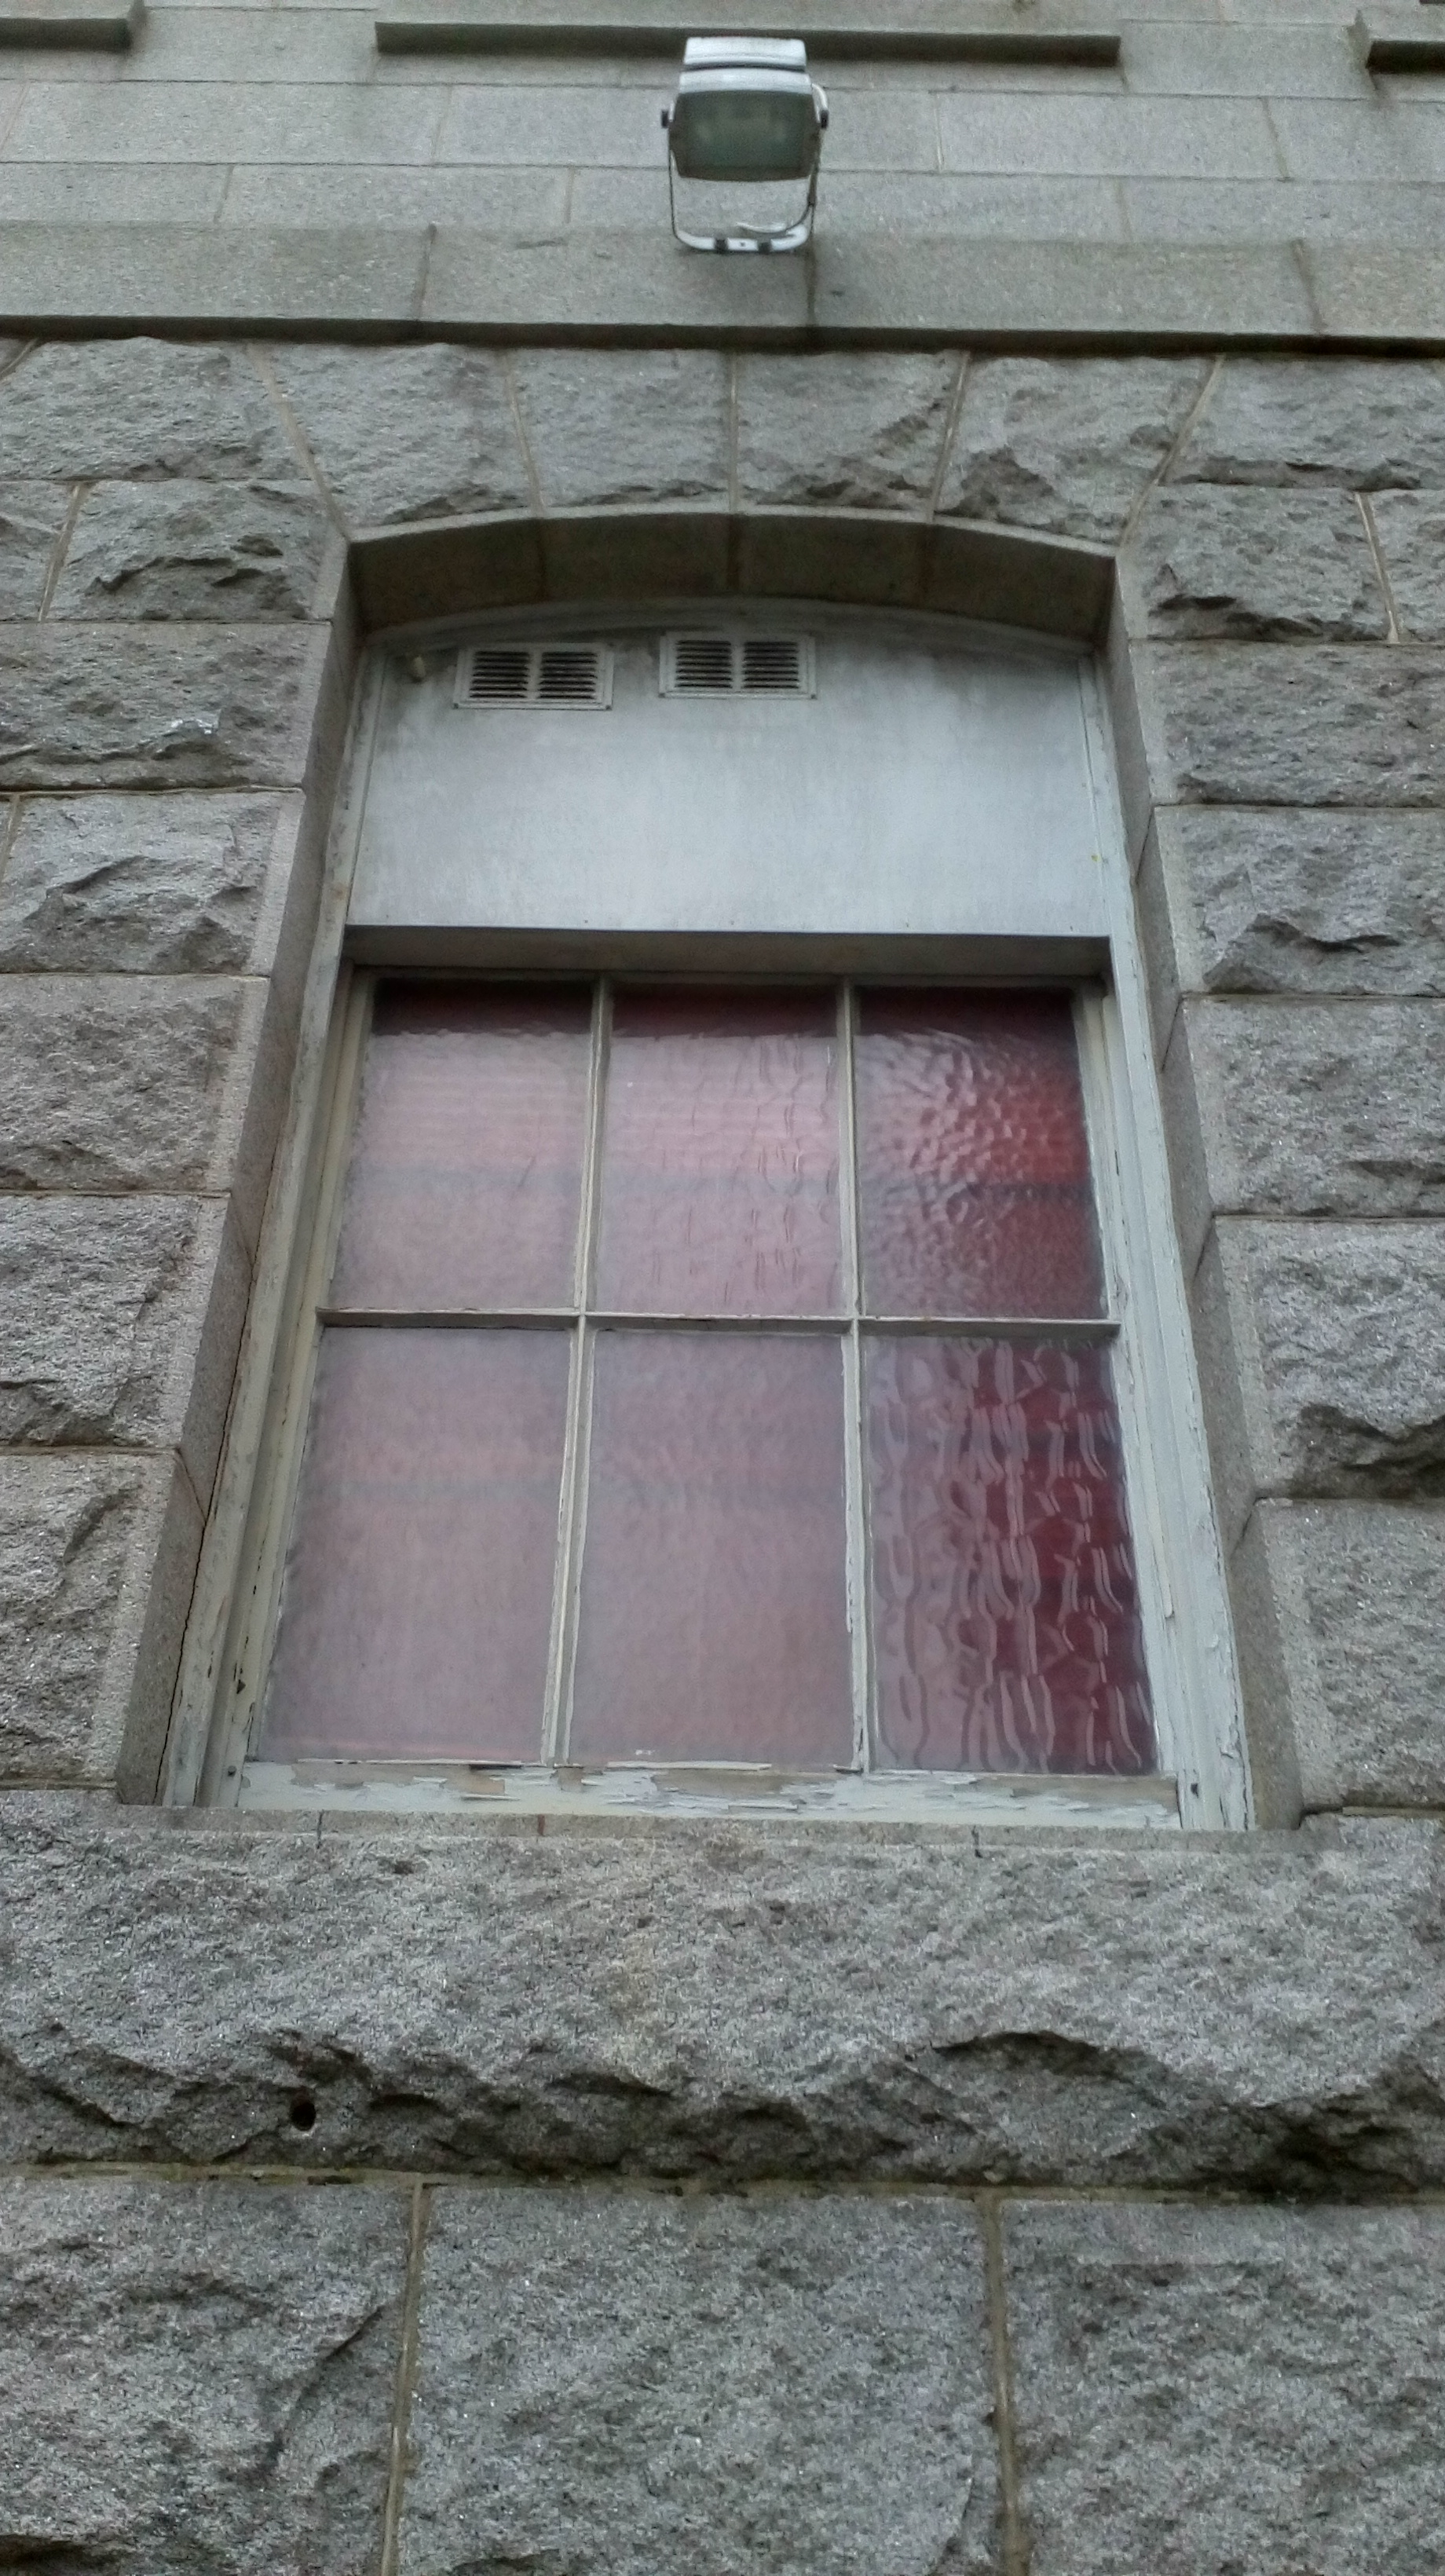 file:exterior_upper_middle_window.jpg